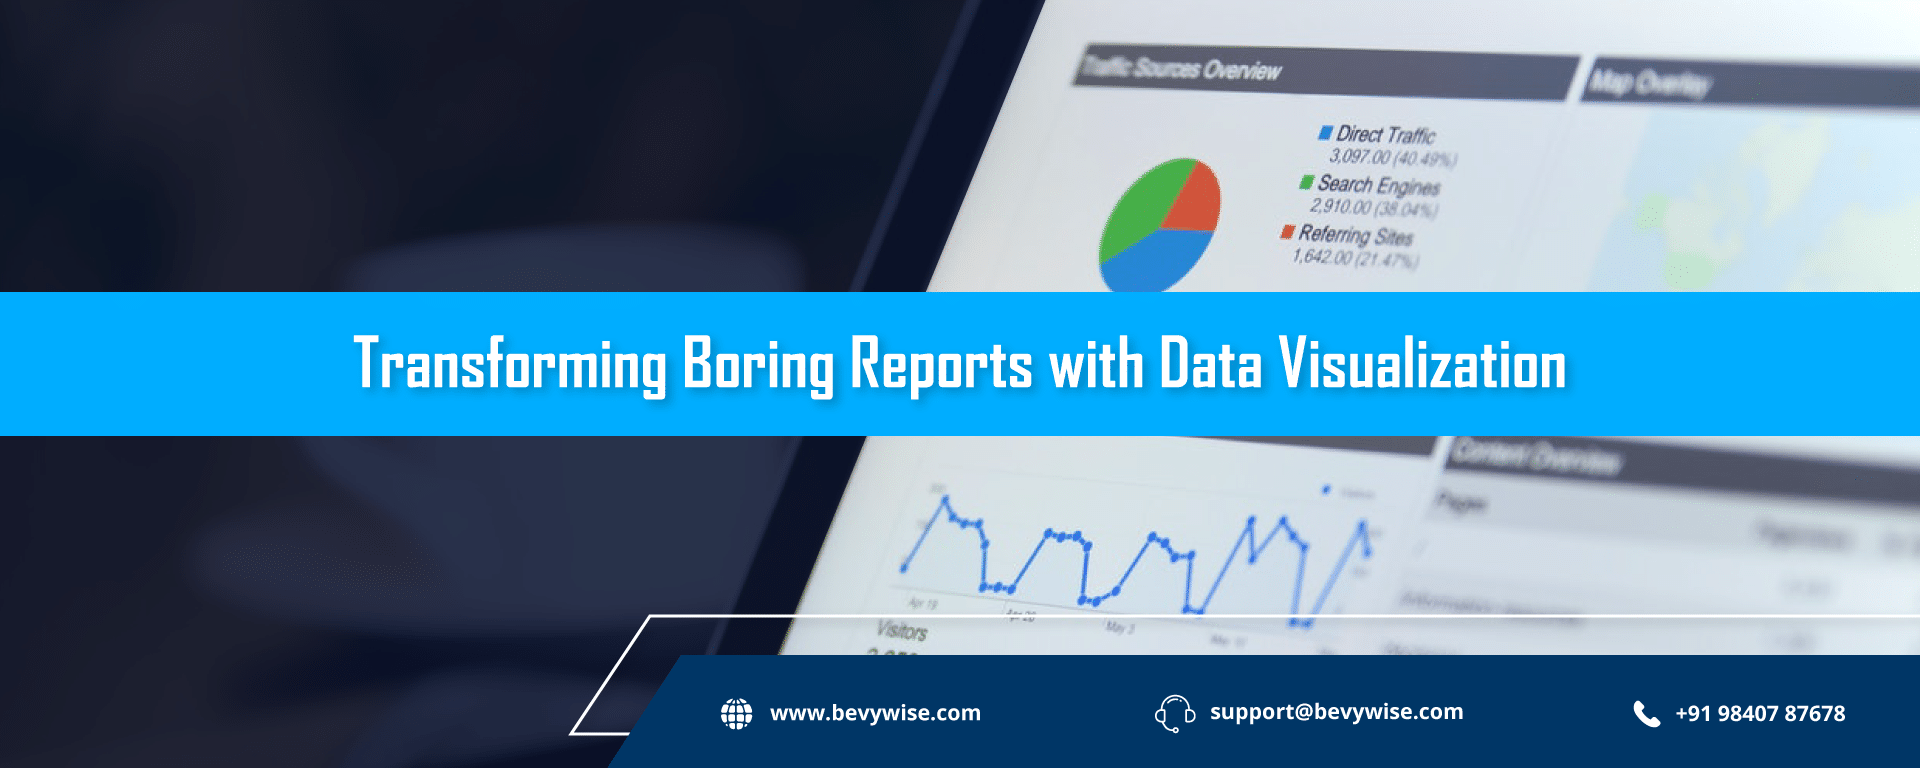 Transforming Boring Reports with Data Visualization : Why it matters?